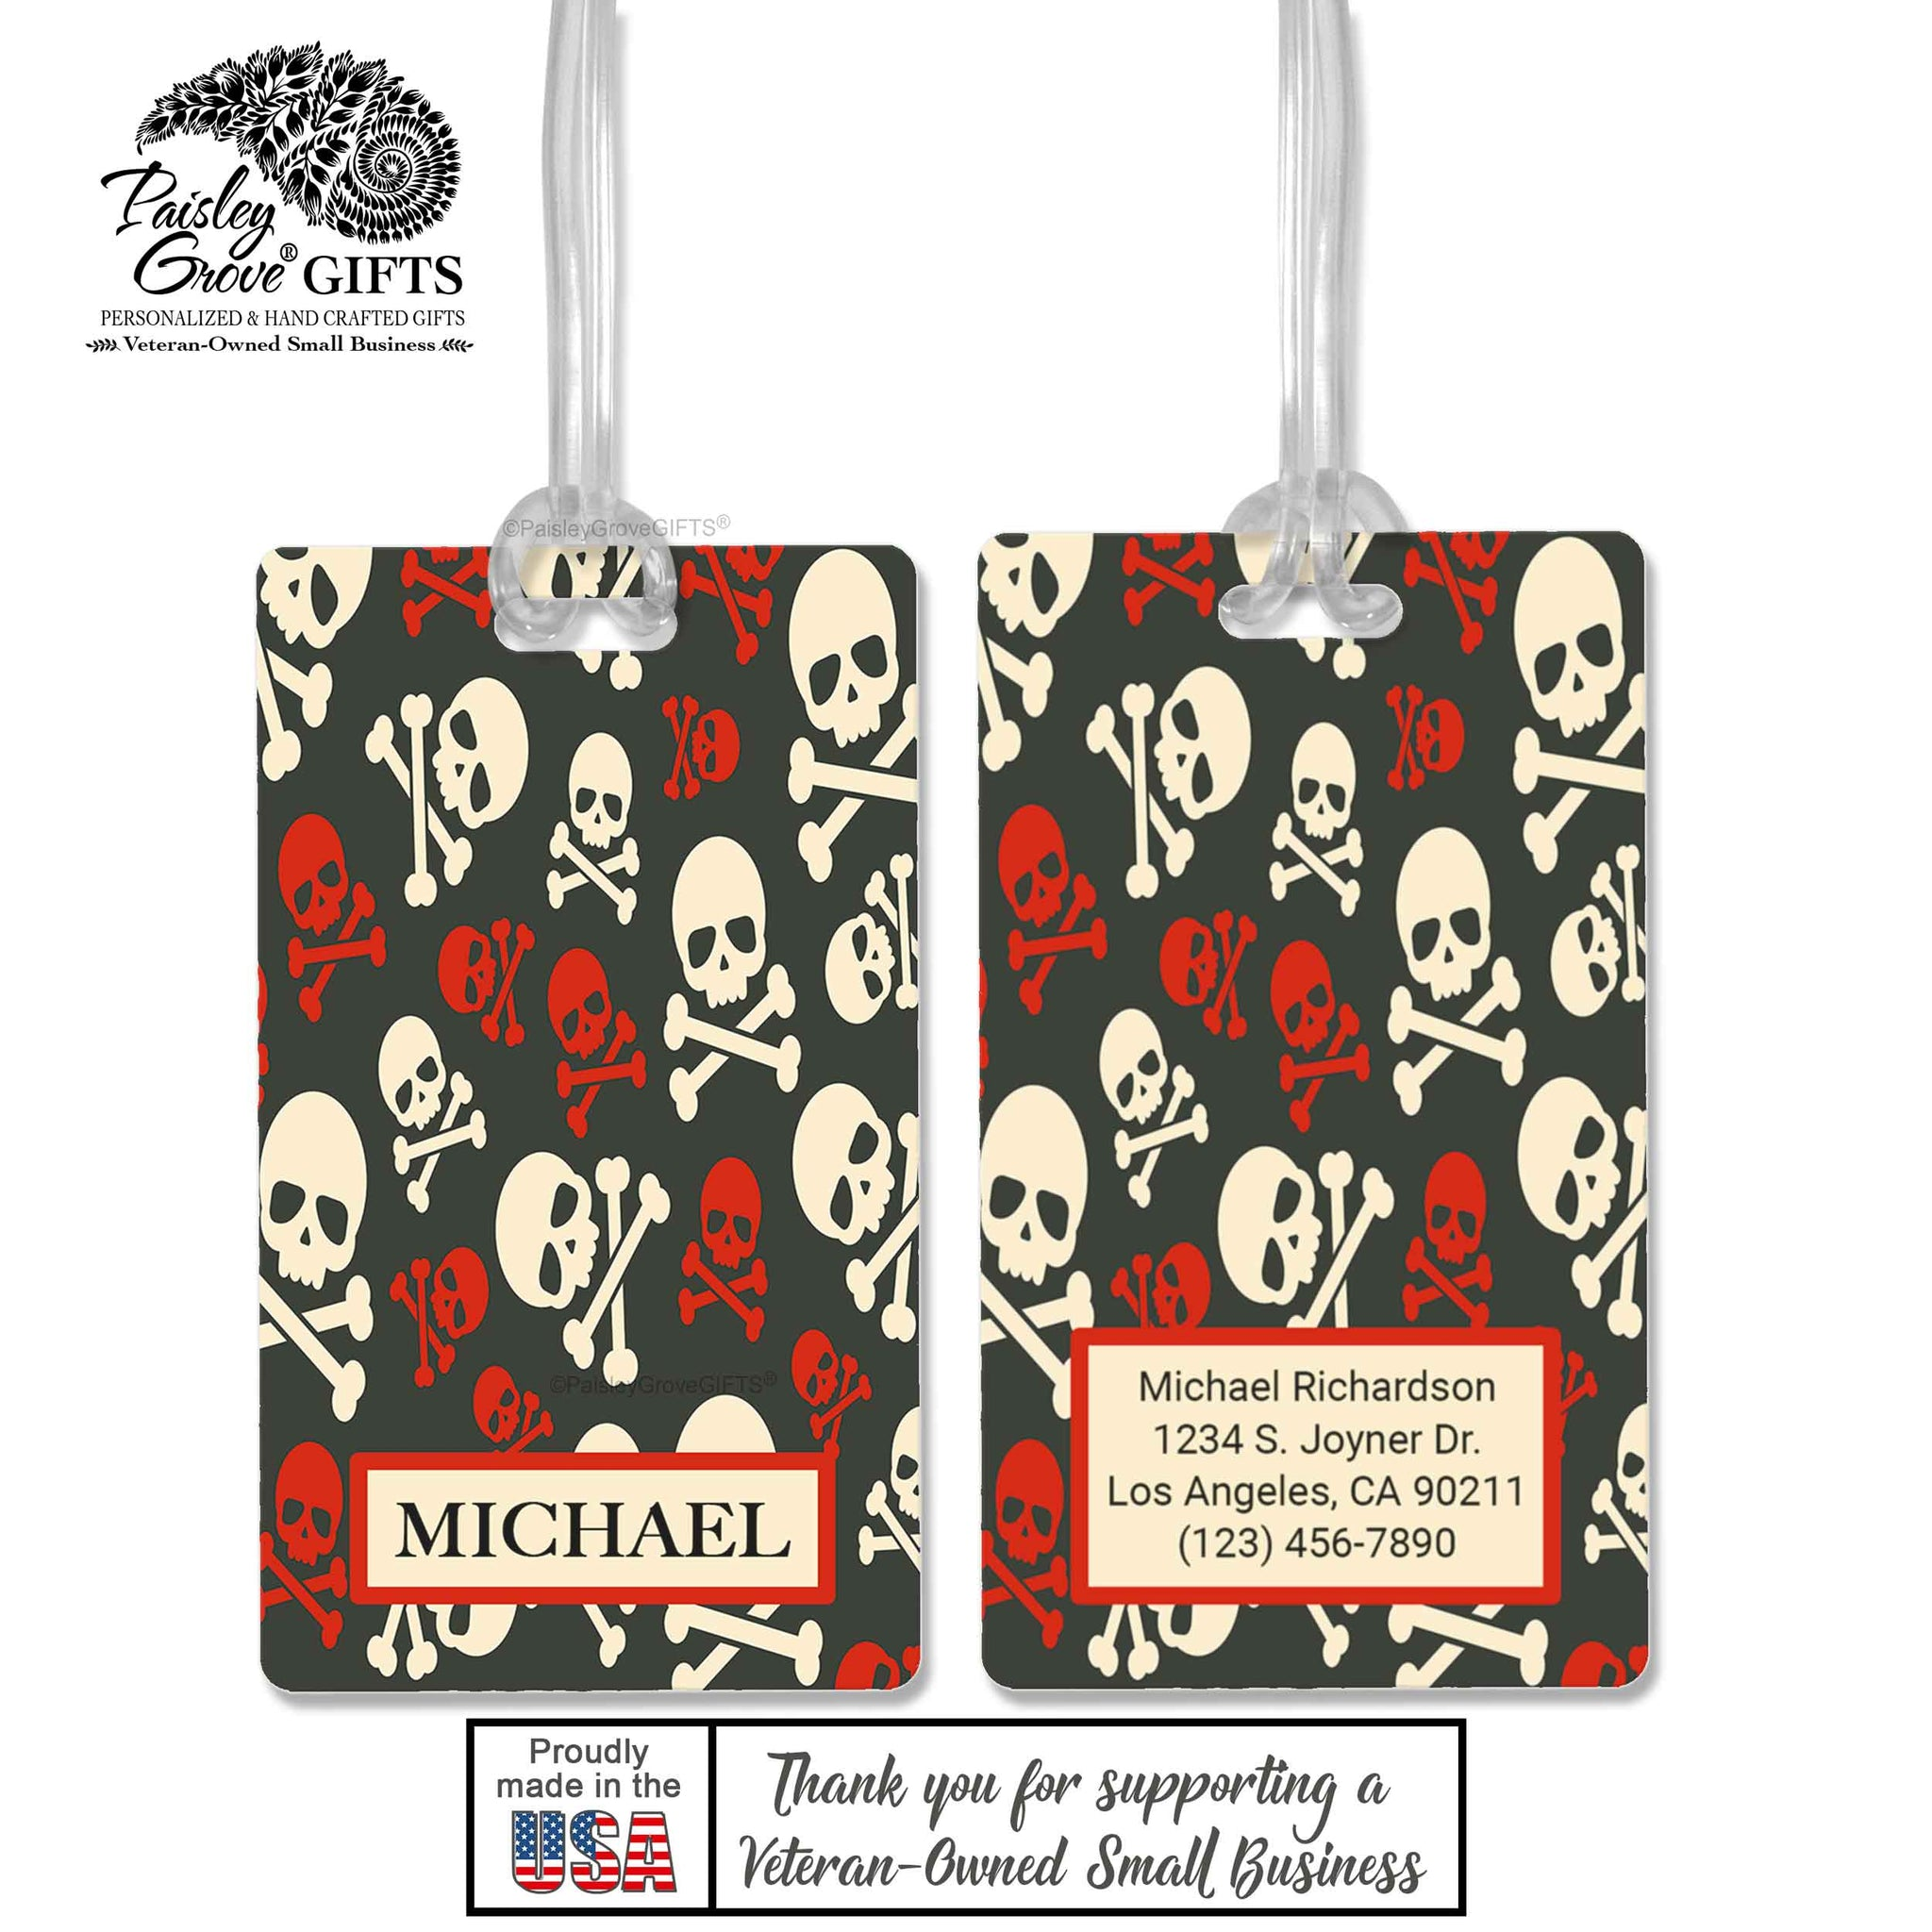 CopyrightPaisleyGroveGIFTS S152a1 Luggage Tags Customized in the USA Pirate Skull and Crossbones